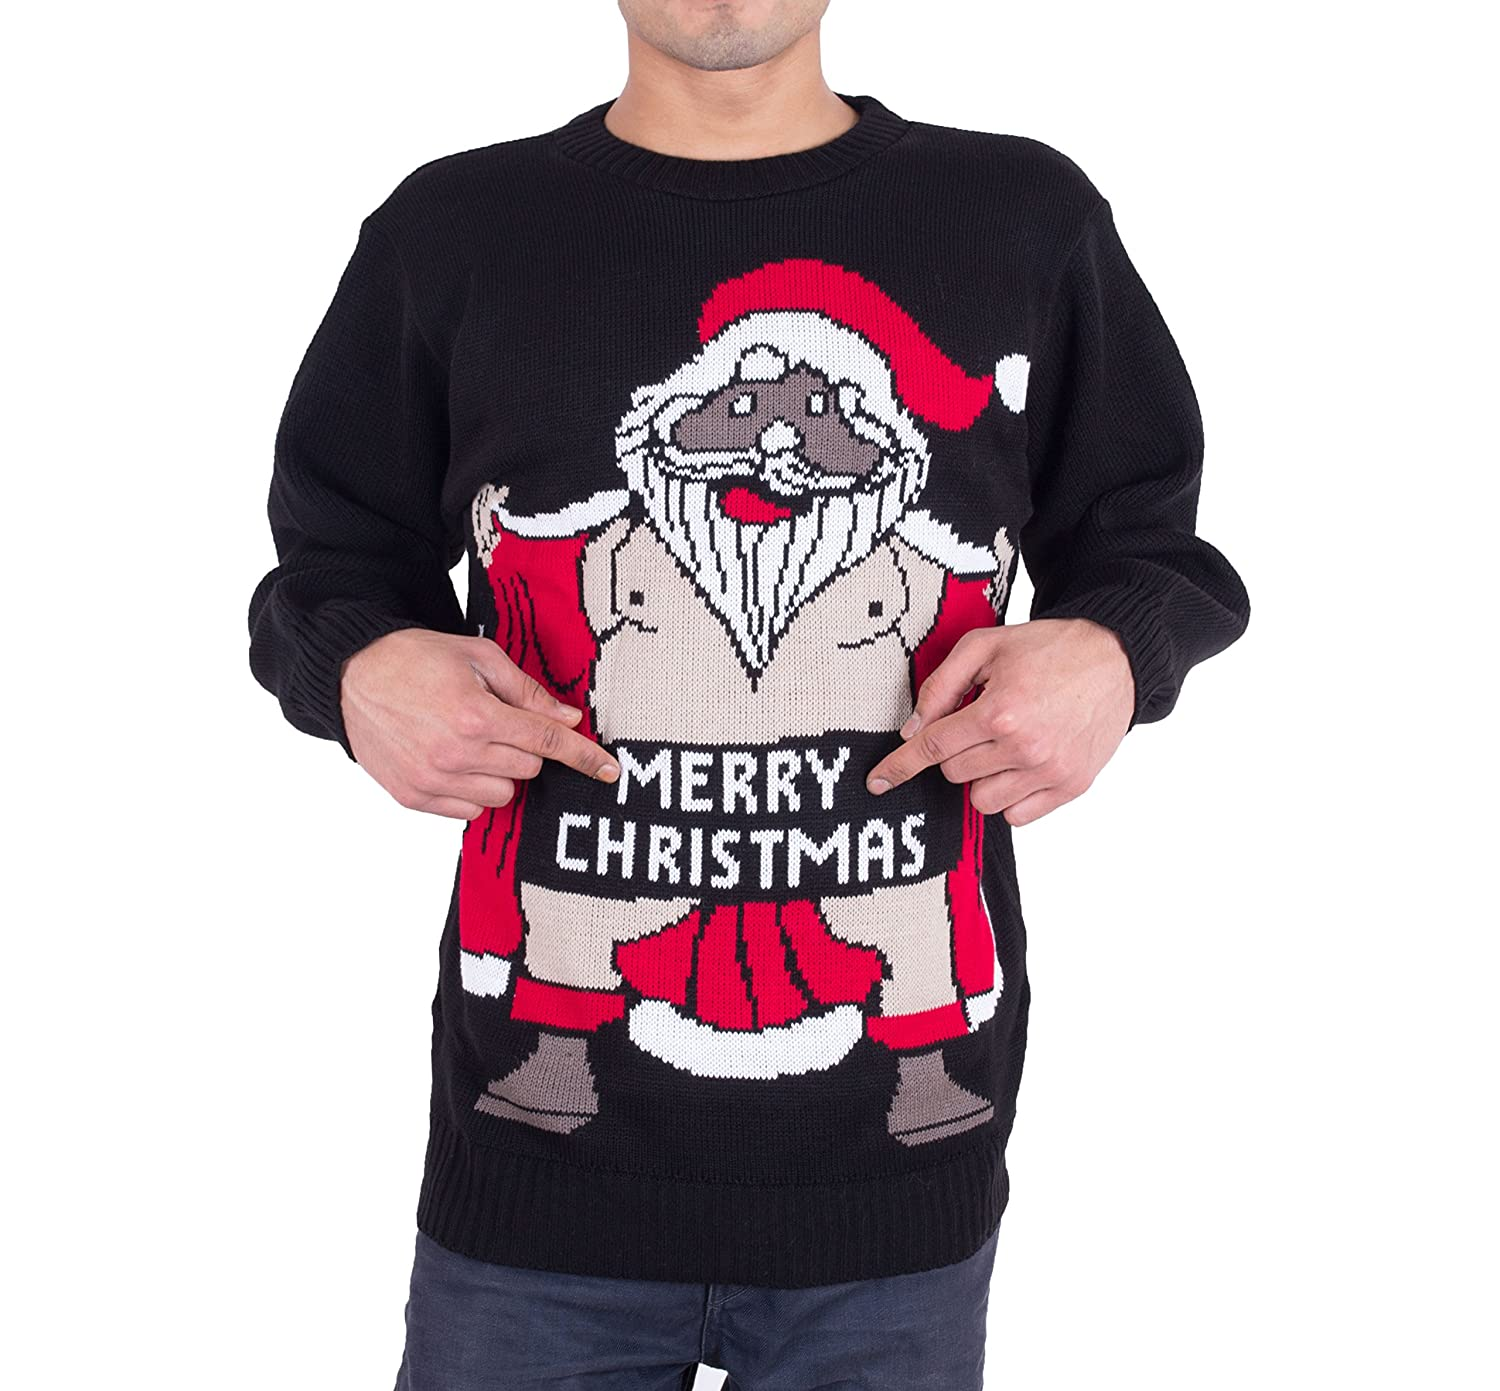 Men's Adults Novelty Christmas Knitted Jumper Size S M L XL XXL